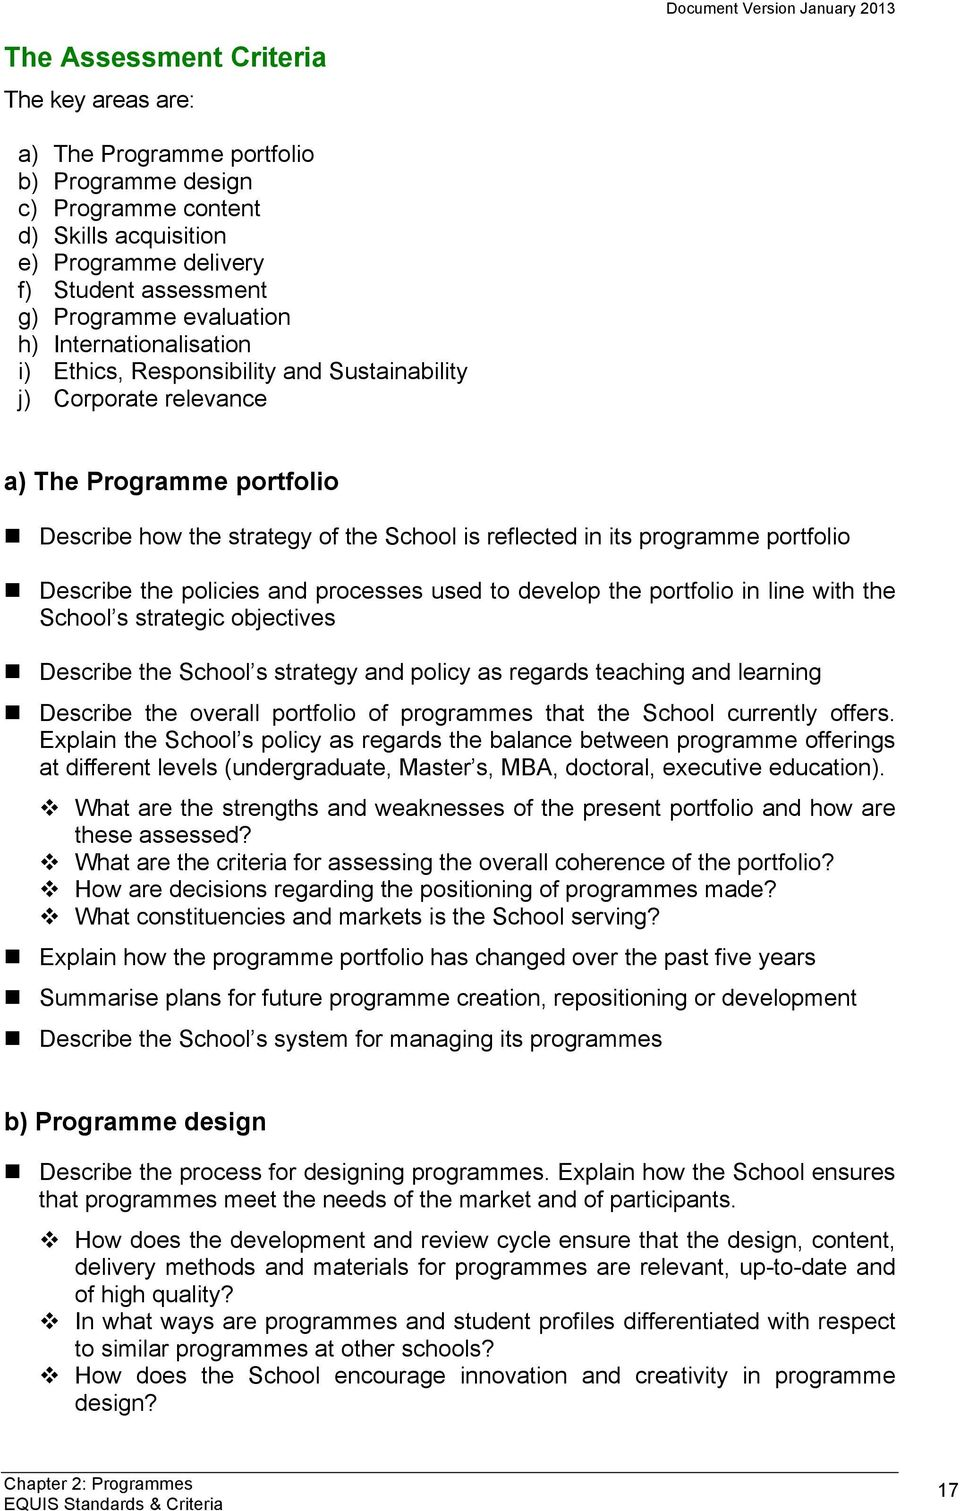 Describe how the strategy of the School is reflected in its programme portfolio! Describe the policies and processes used to develop the portfolio in line with the School s strategic objectives!